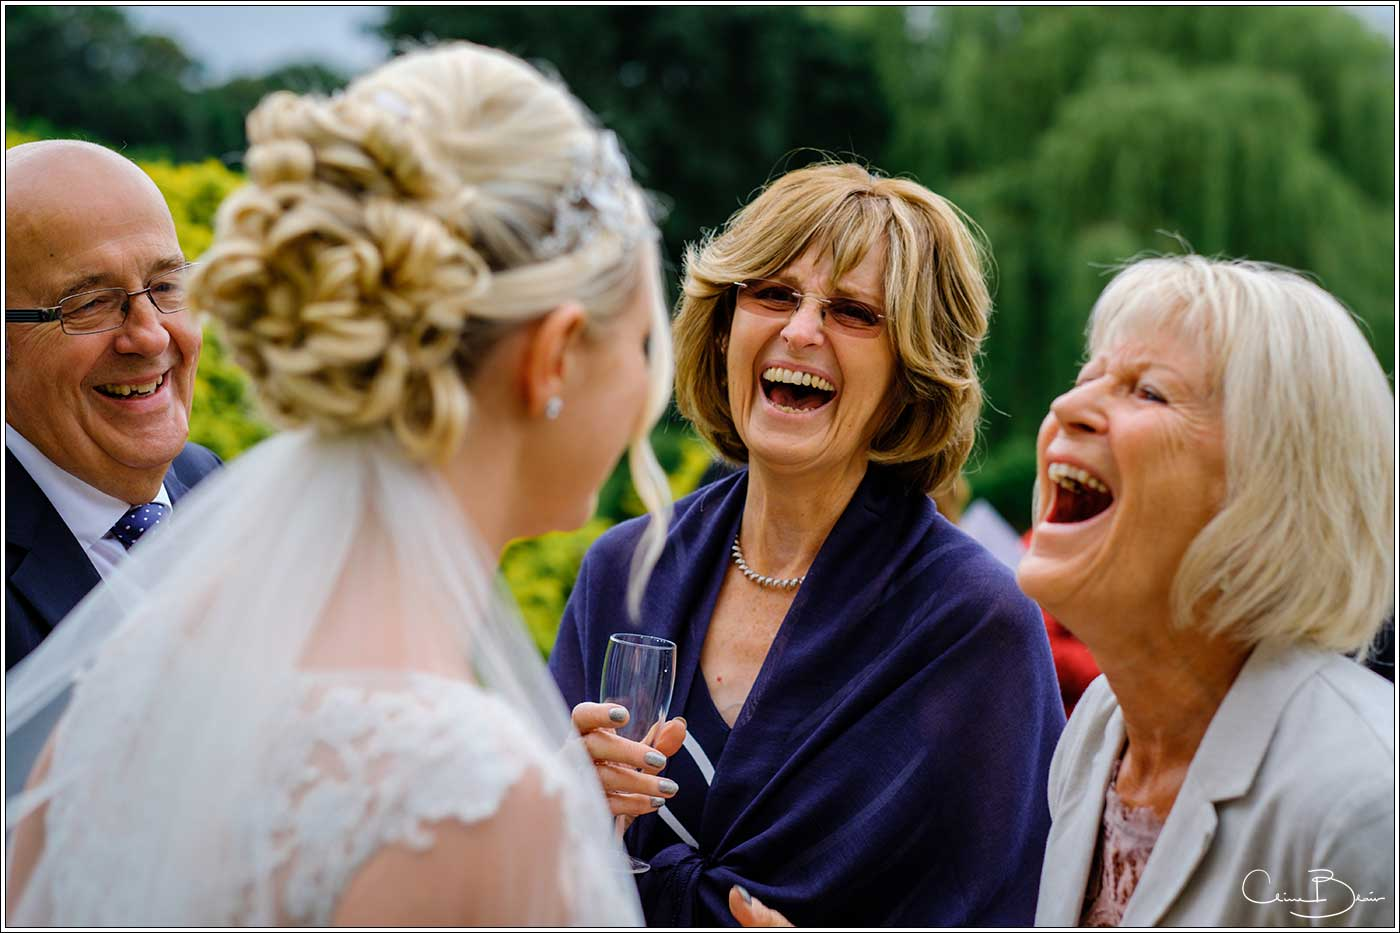 Coombe Abbey wedding photography showing 2 women laughing with bride